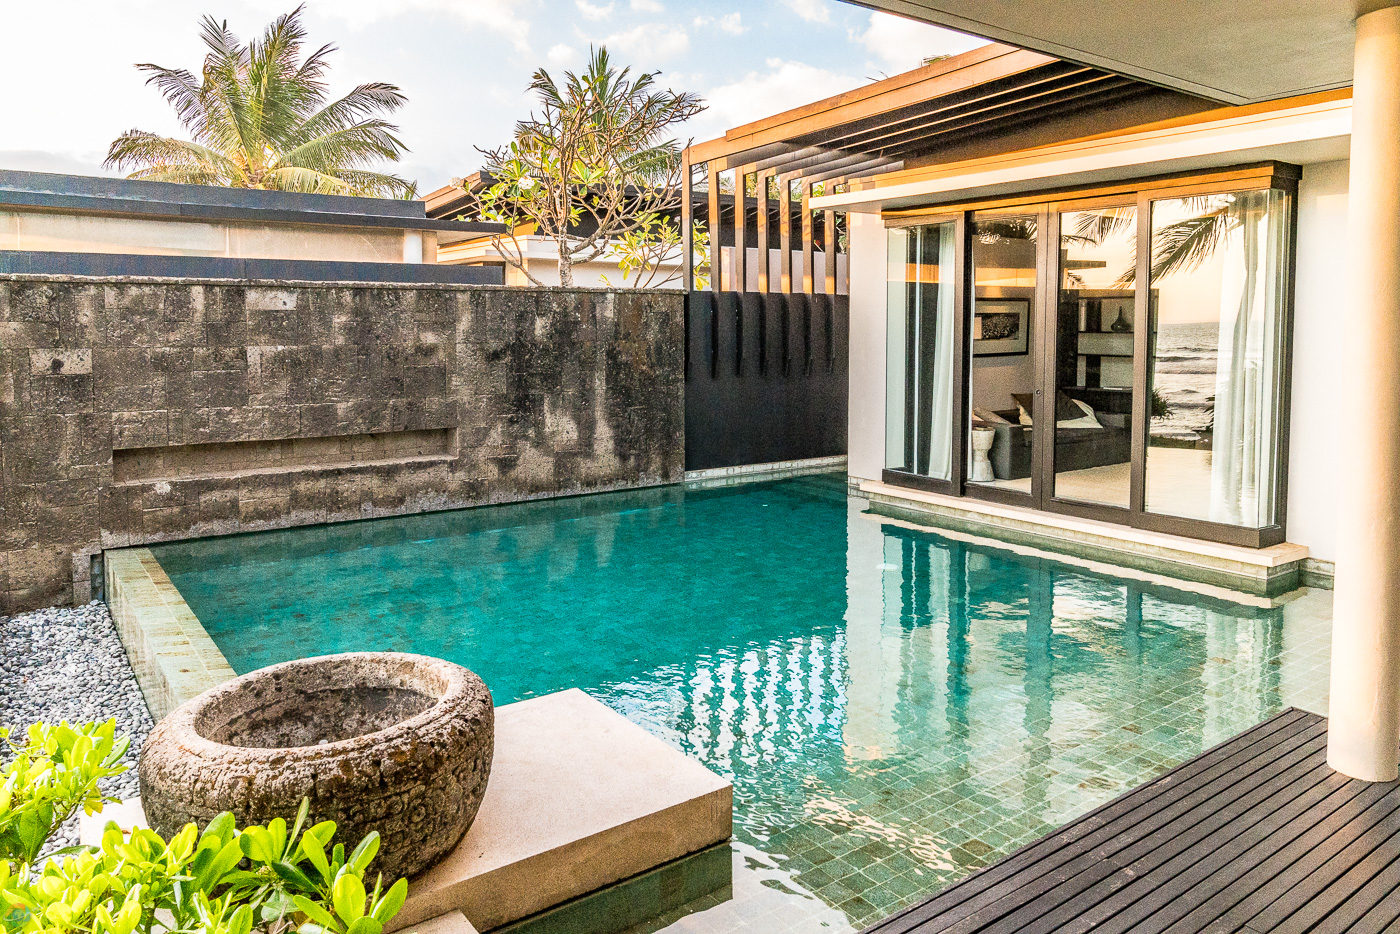 Your private pool inside you private villa brings a welcome chance to relax.